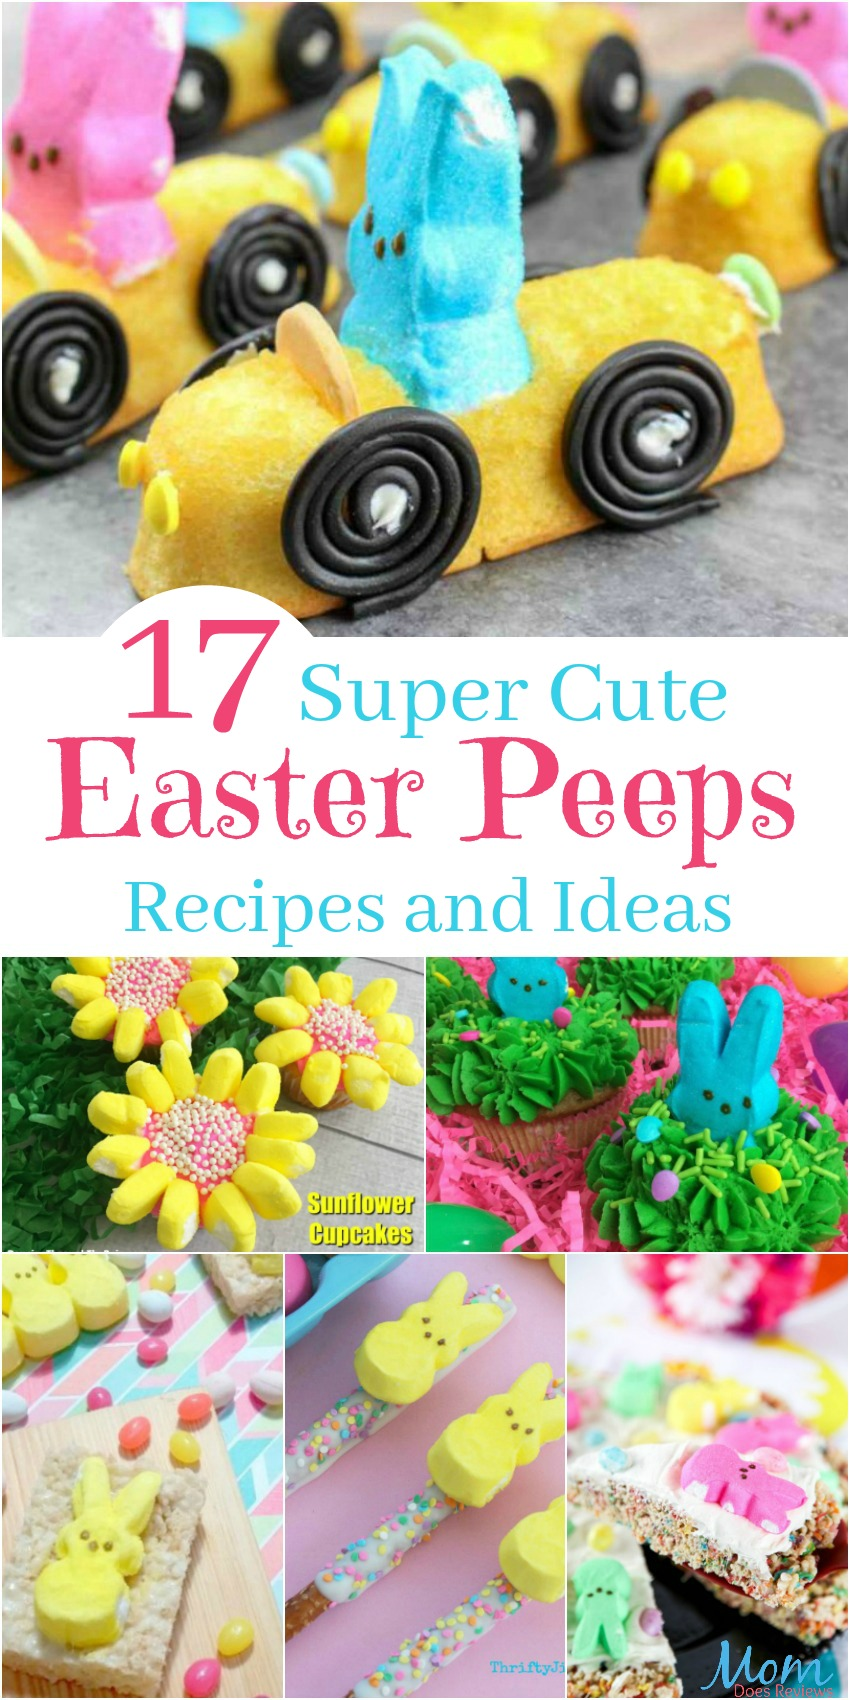 17 Super Cute Easter Peeps Recipes and Ideas banner